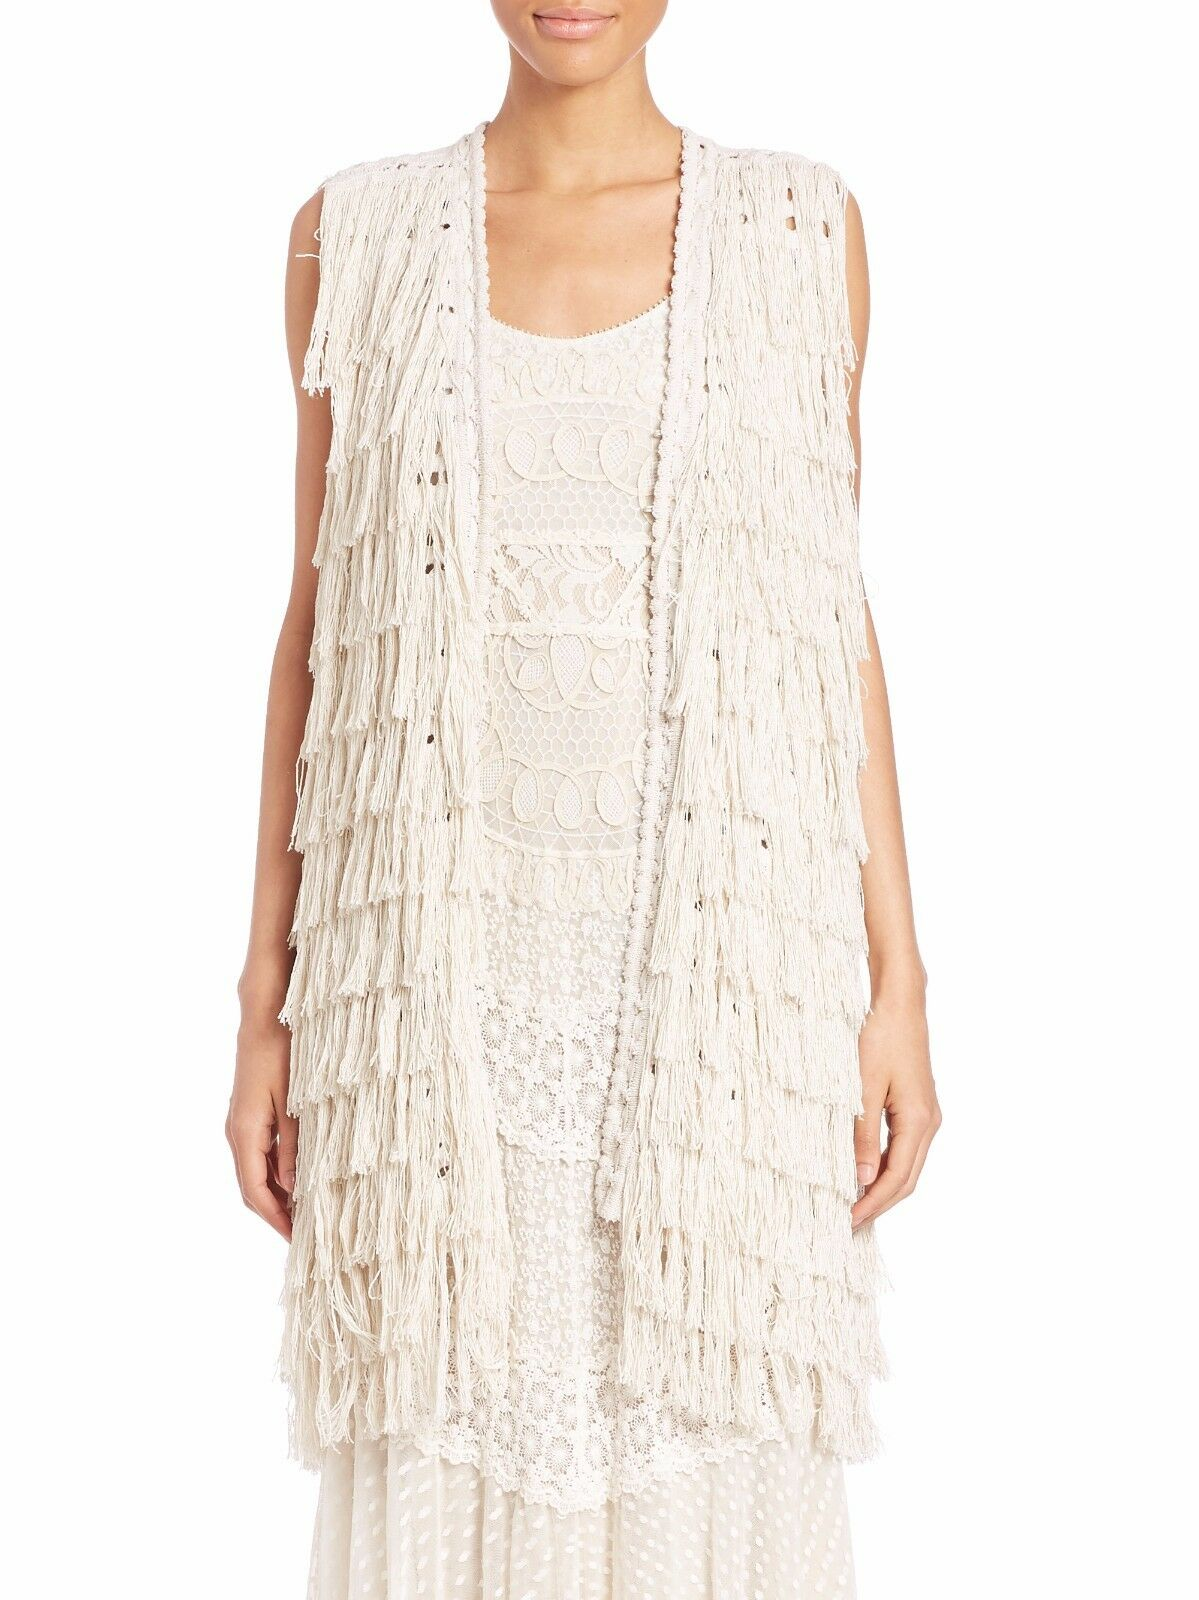 NWT alice + olivia by Stacey Bendet Size Small Weiss Silk Blend Fringe Vest  598